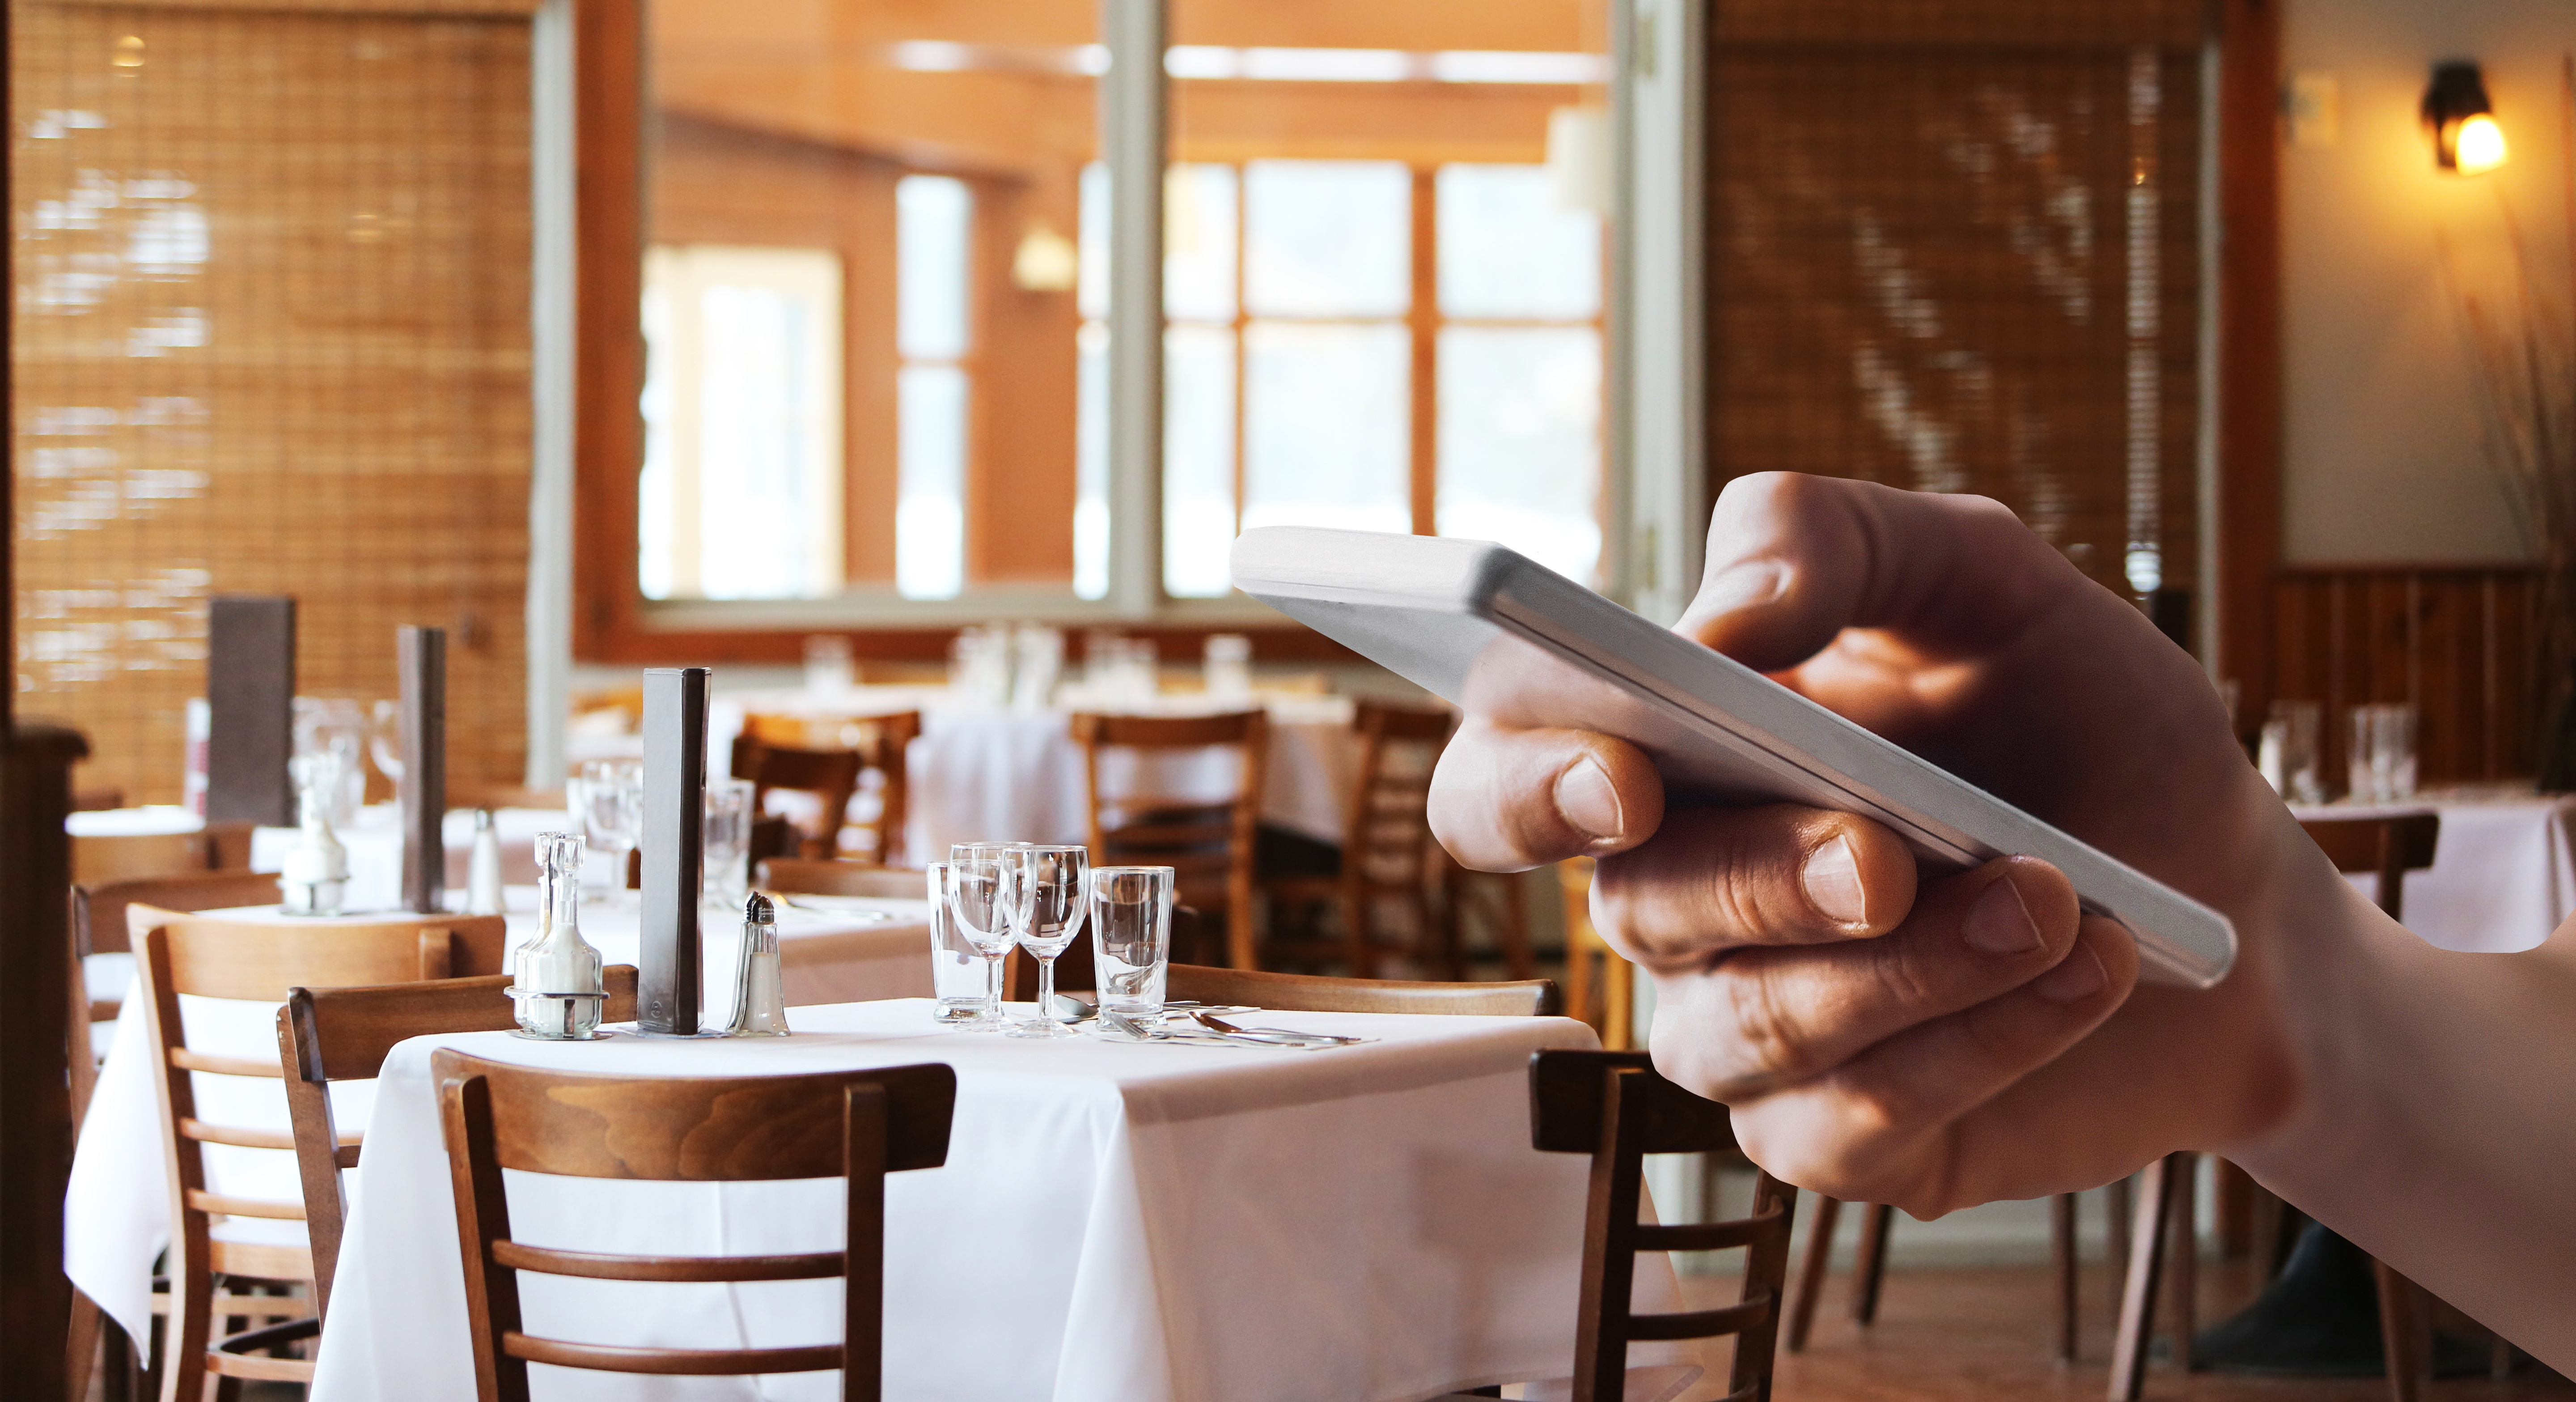 IoT in Restaurants – Low-Hanging Fruit for the Picking